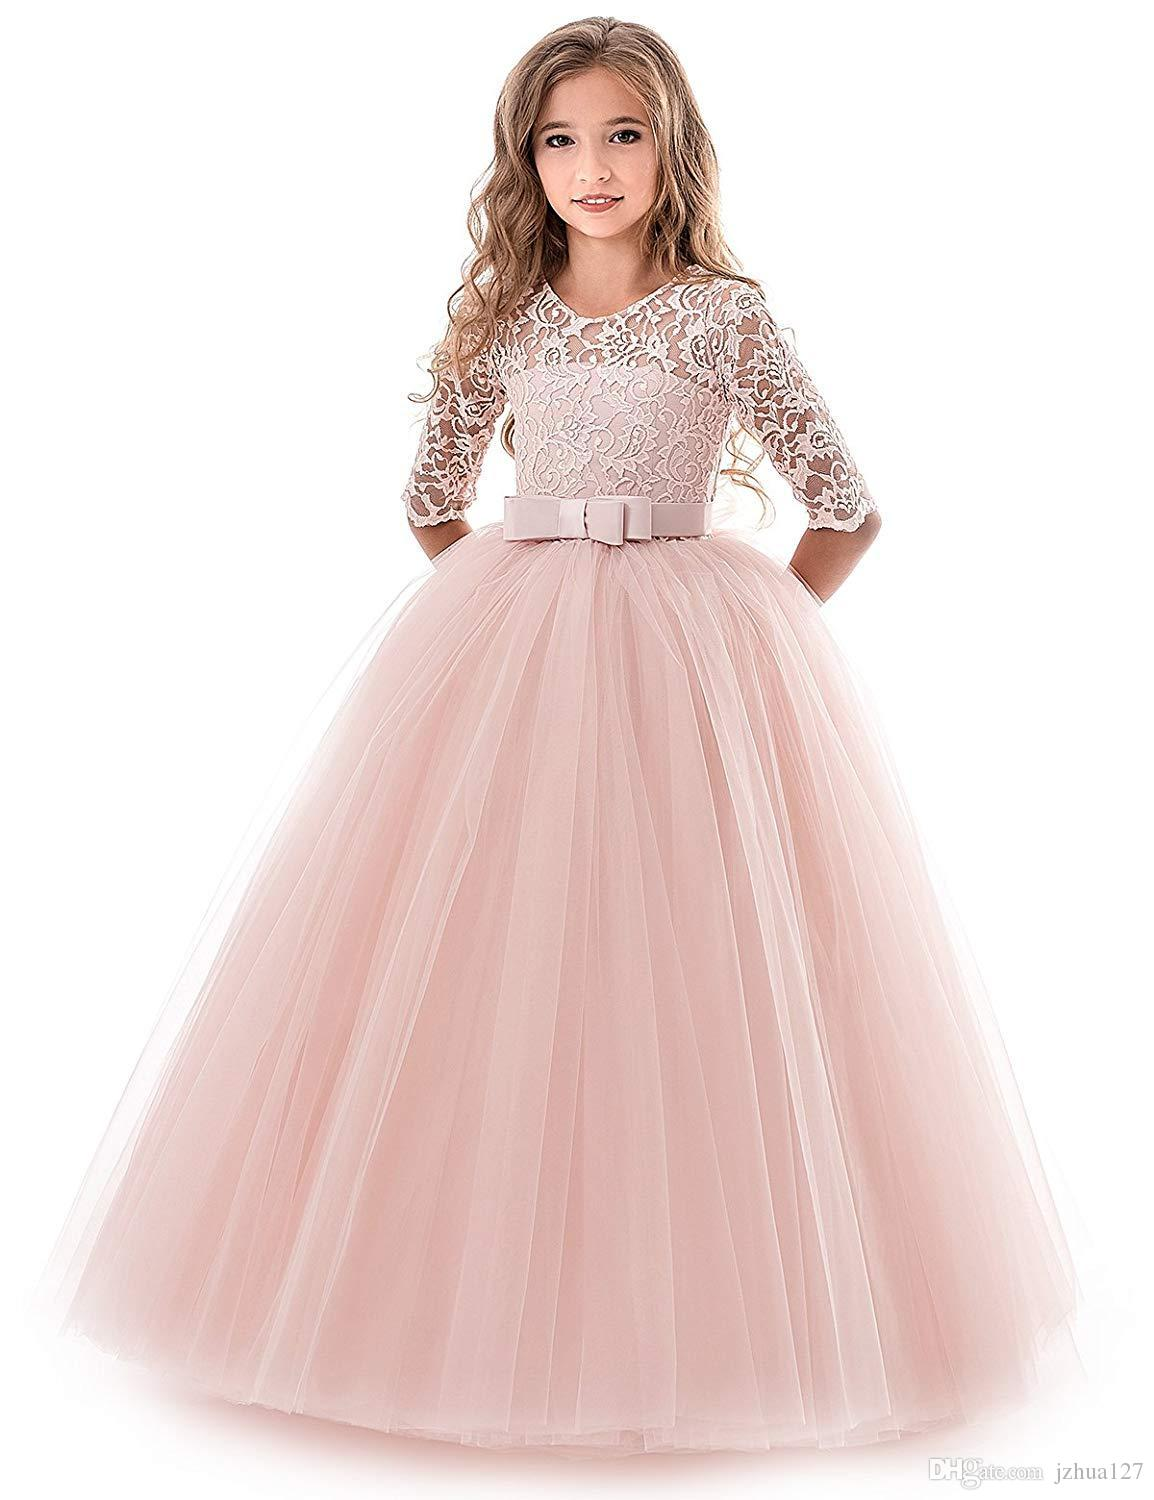 fa76eef81 Flower Girl Dress Lace Tulle Floor Length Bridesmaid Dance Ball Gown Dress  for 2-14 Years